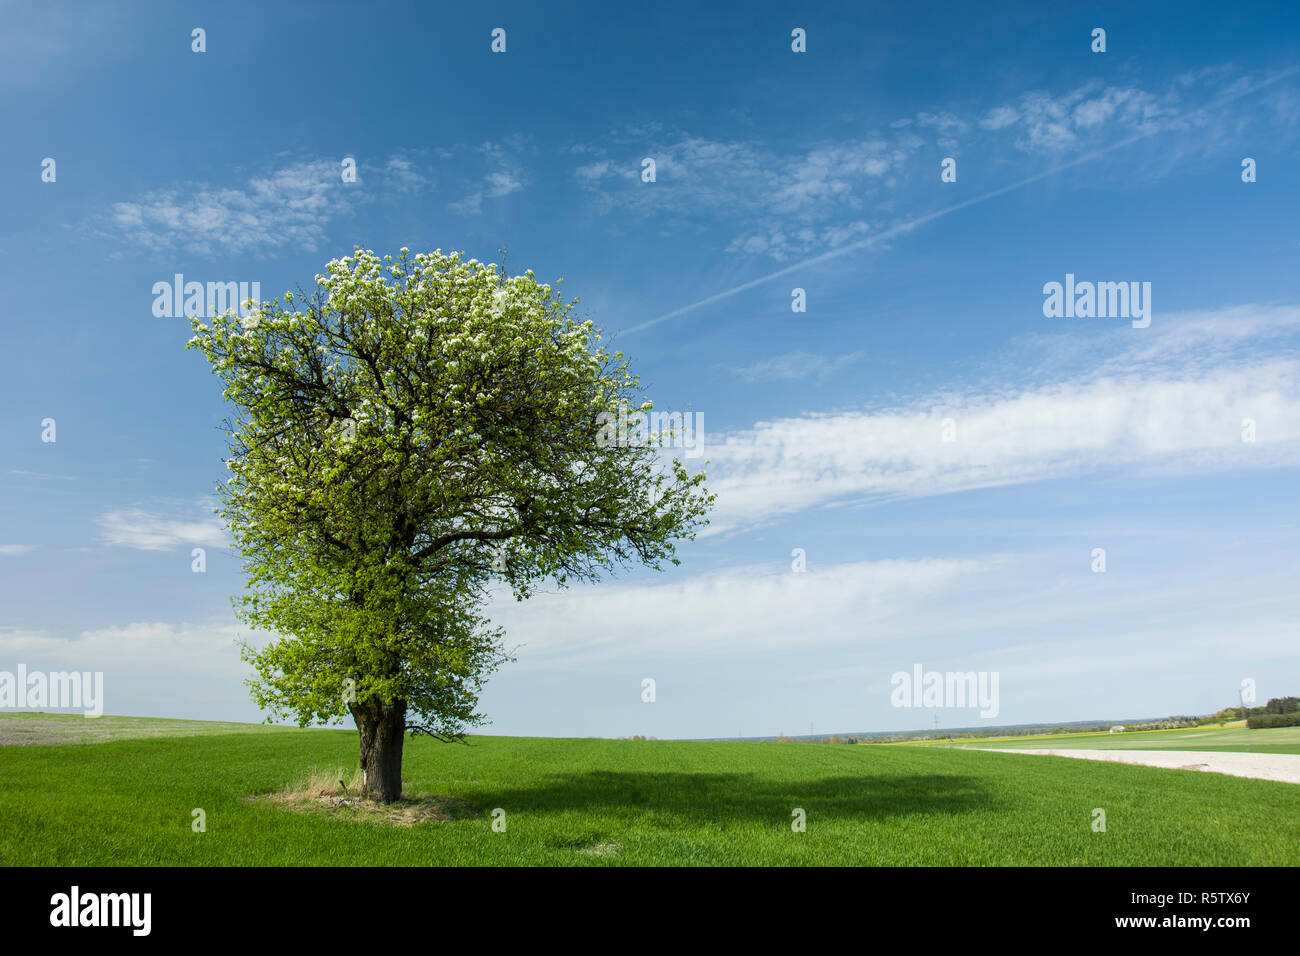 Large flourishing deciduous tree in a green field, horizon and clouds on blue sky - Stock Image